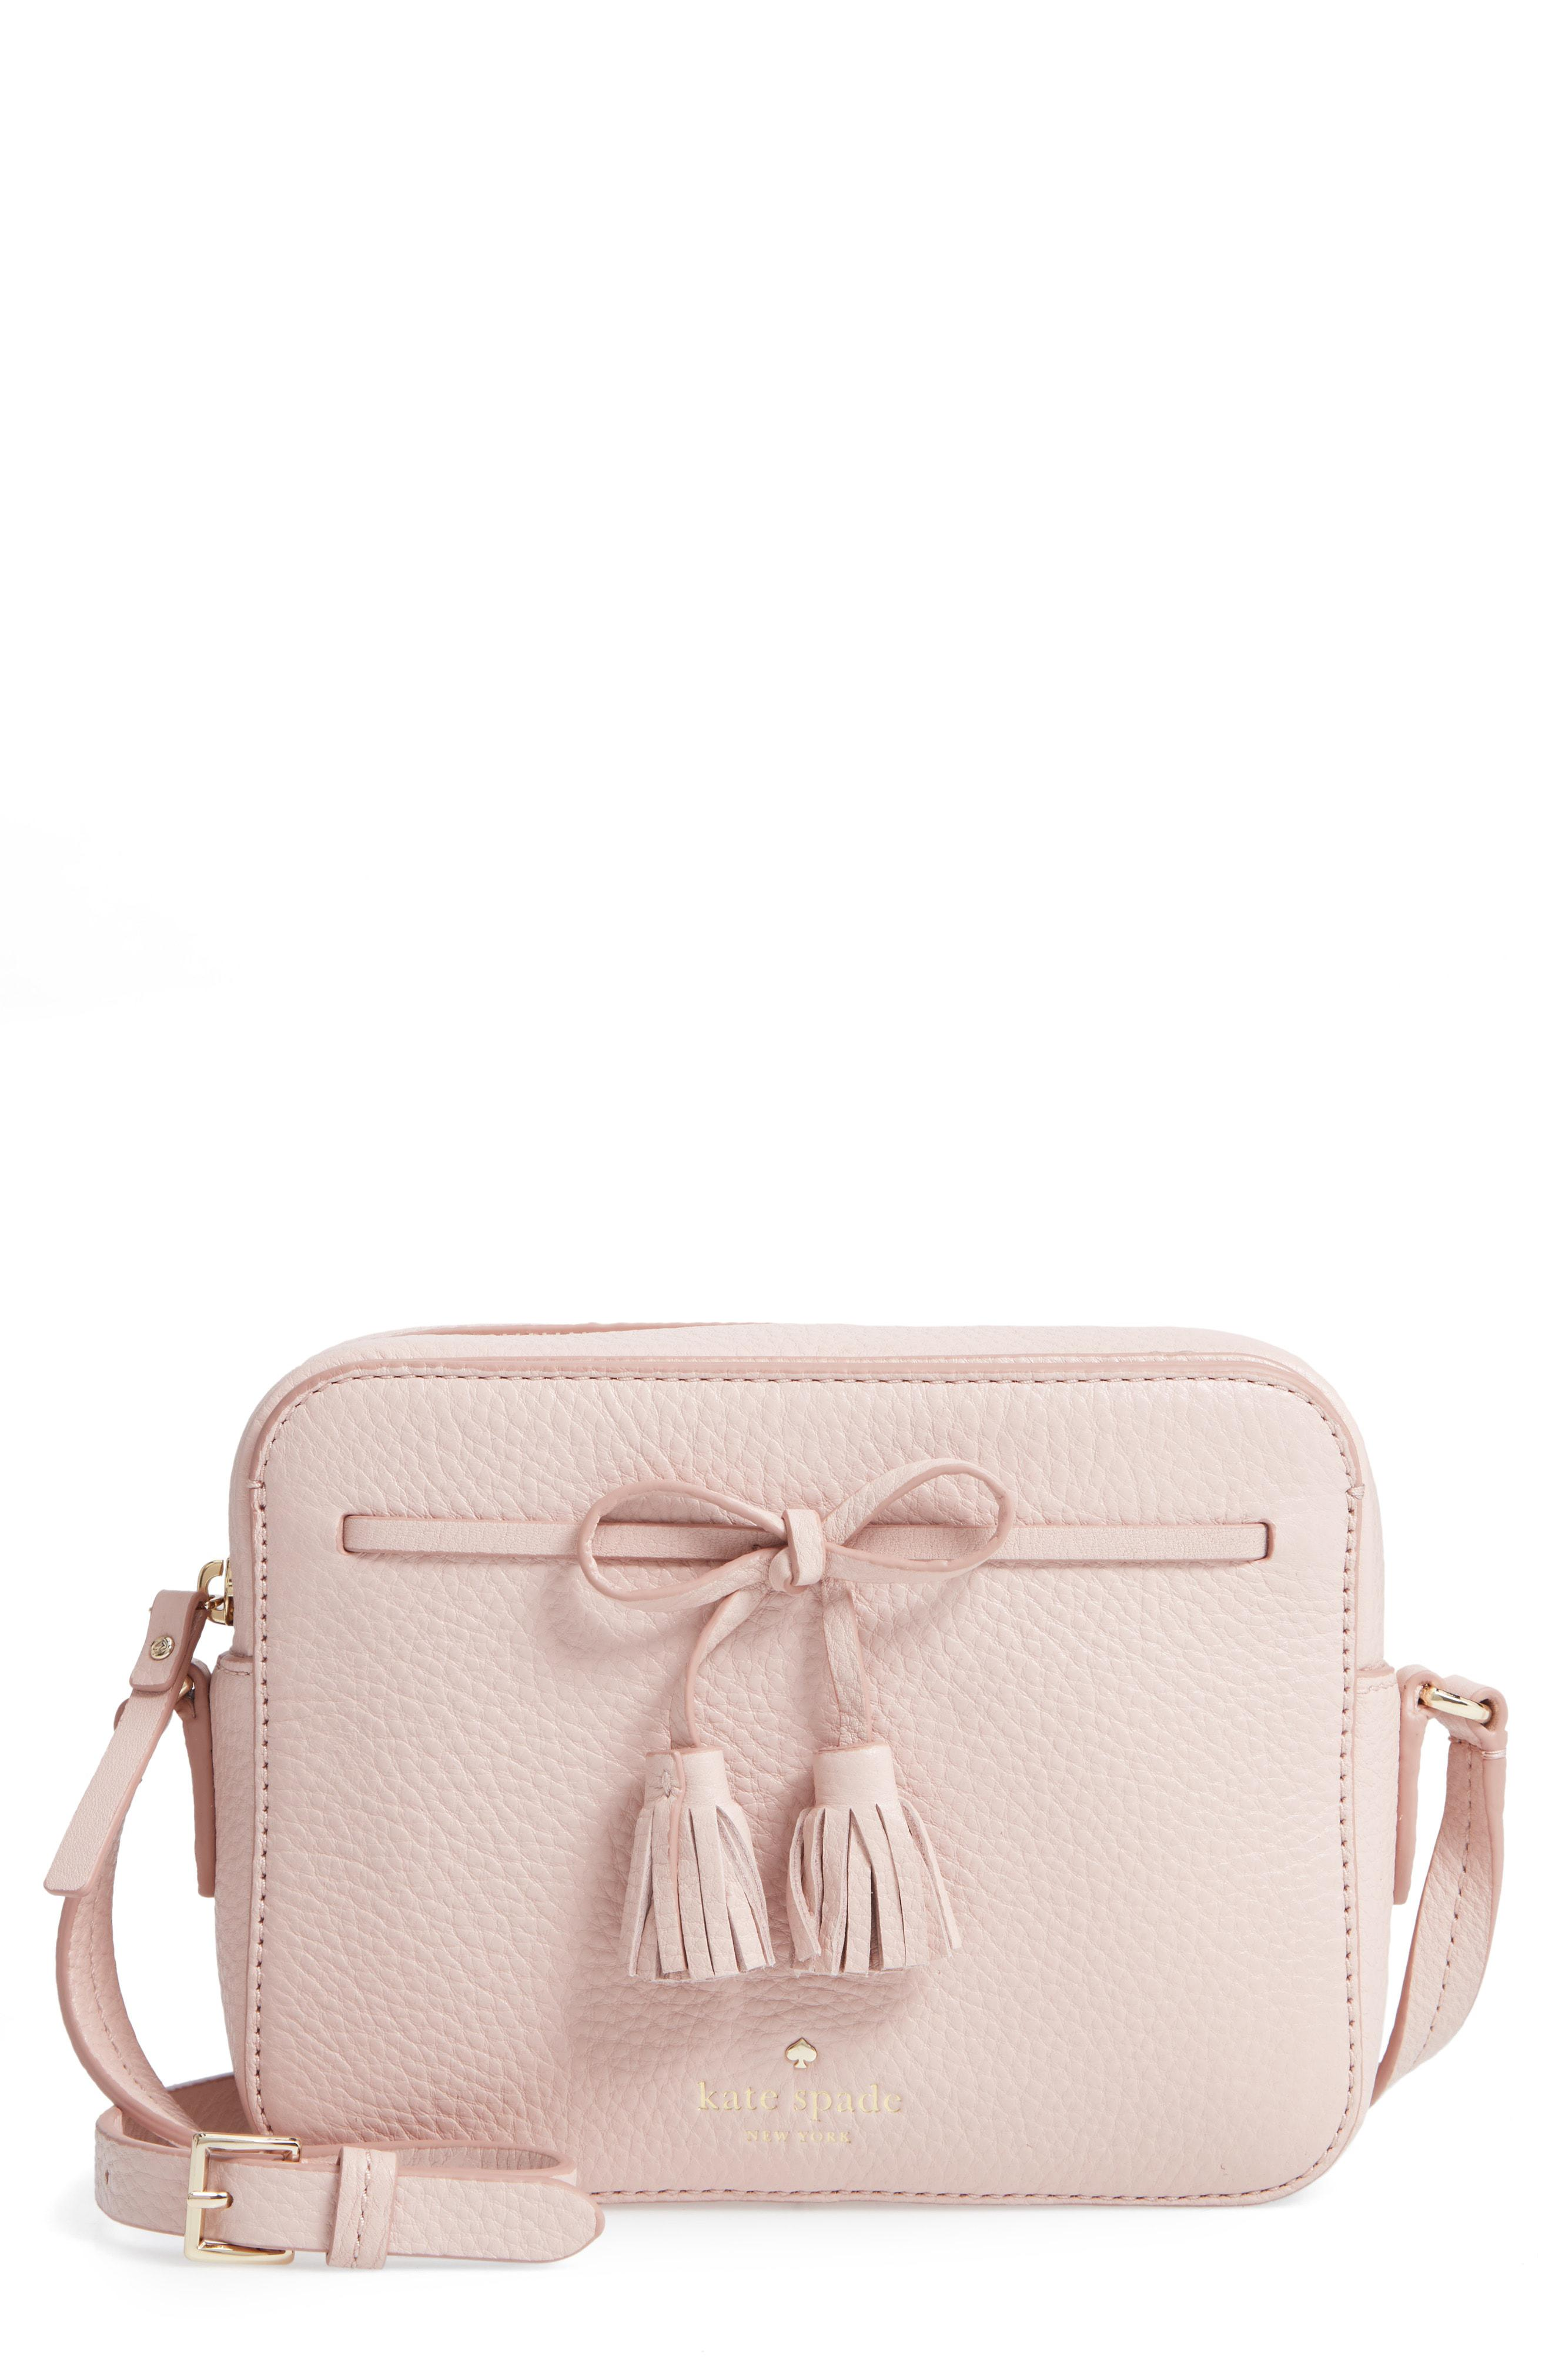 62236efd2237 Kate Spade Hayes Street - Arla Leather Crossbody Bag in Pink - Lyst